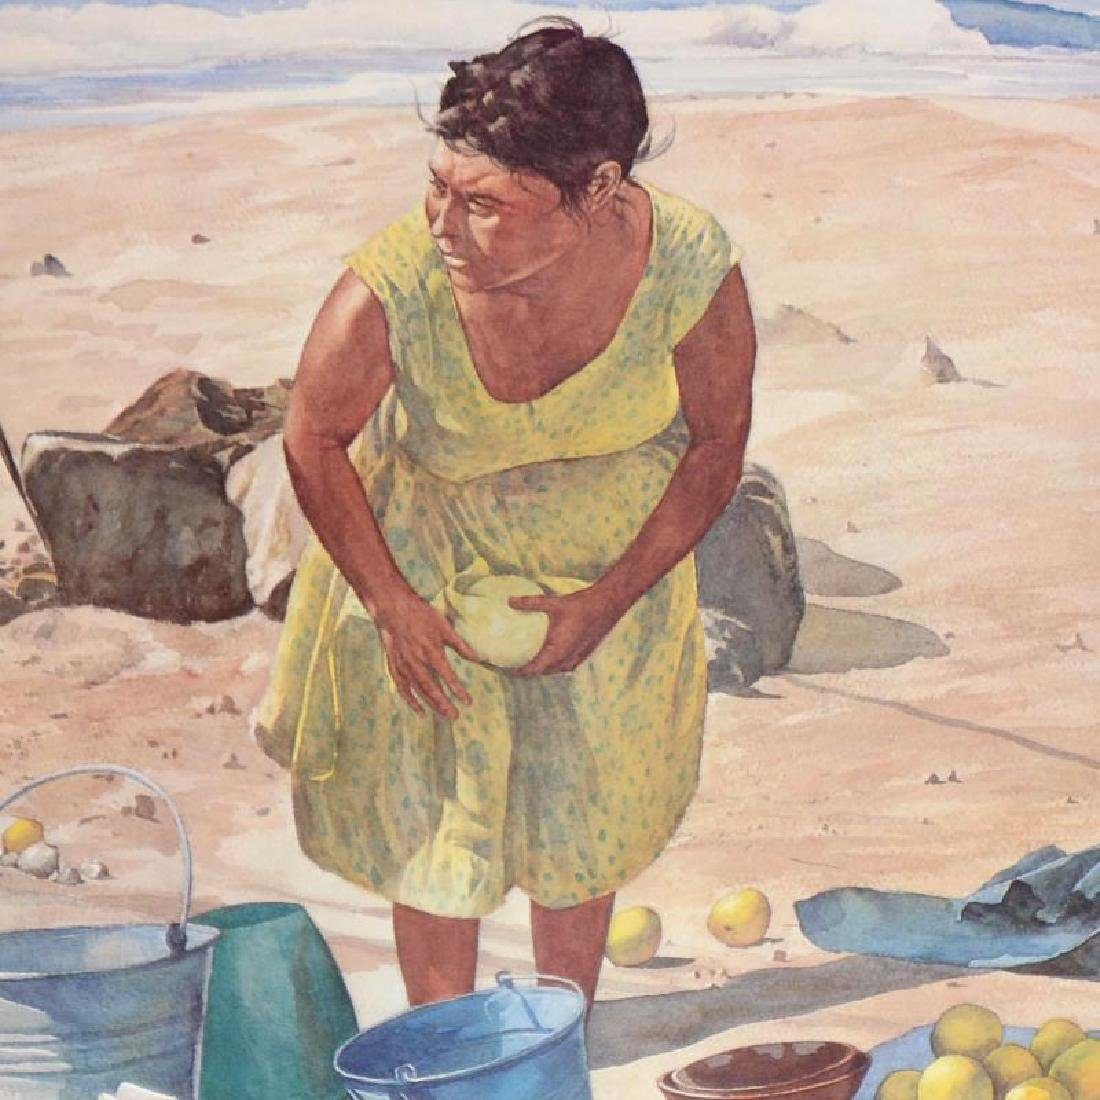 Mexican Fruit Vendor by Nelson, William - 2